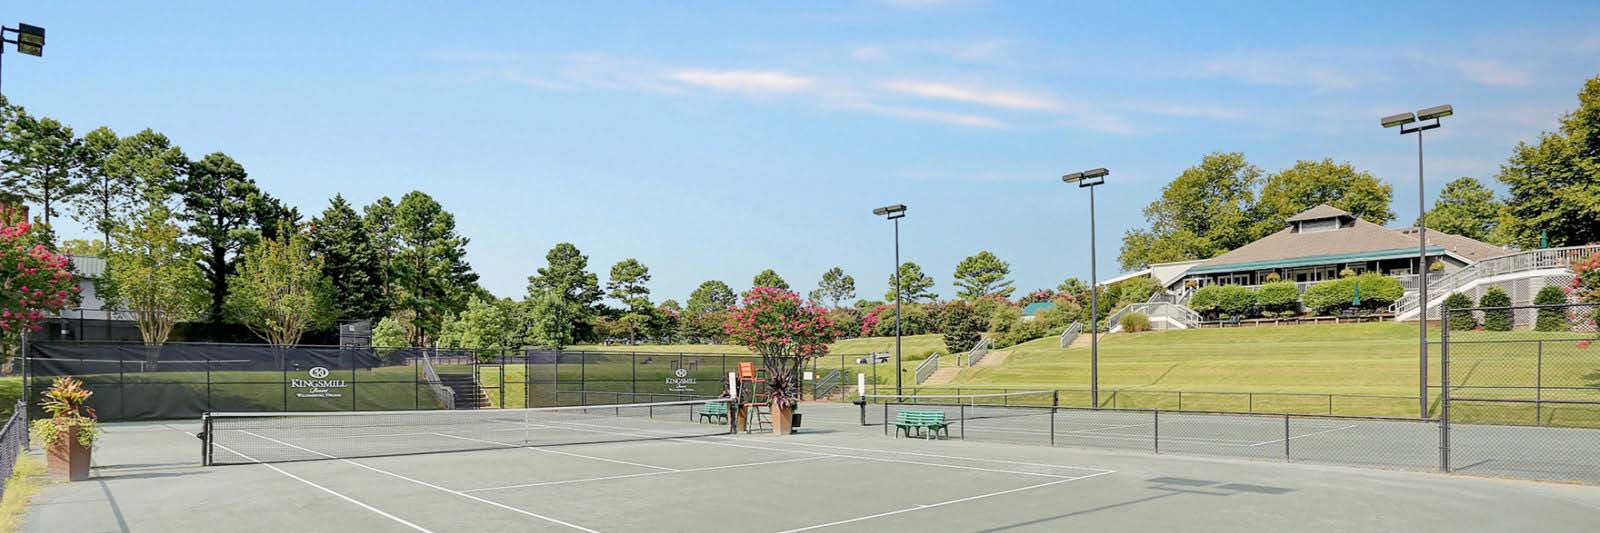 Kingsmill Resort tennis